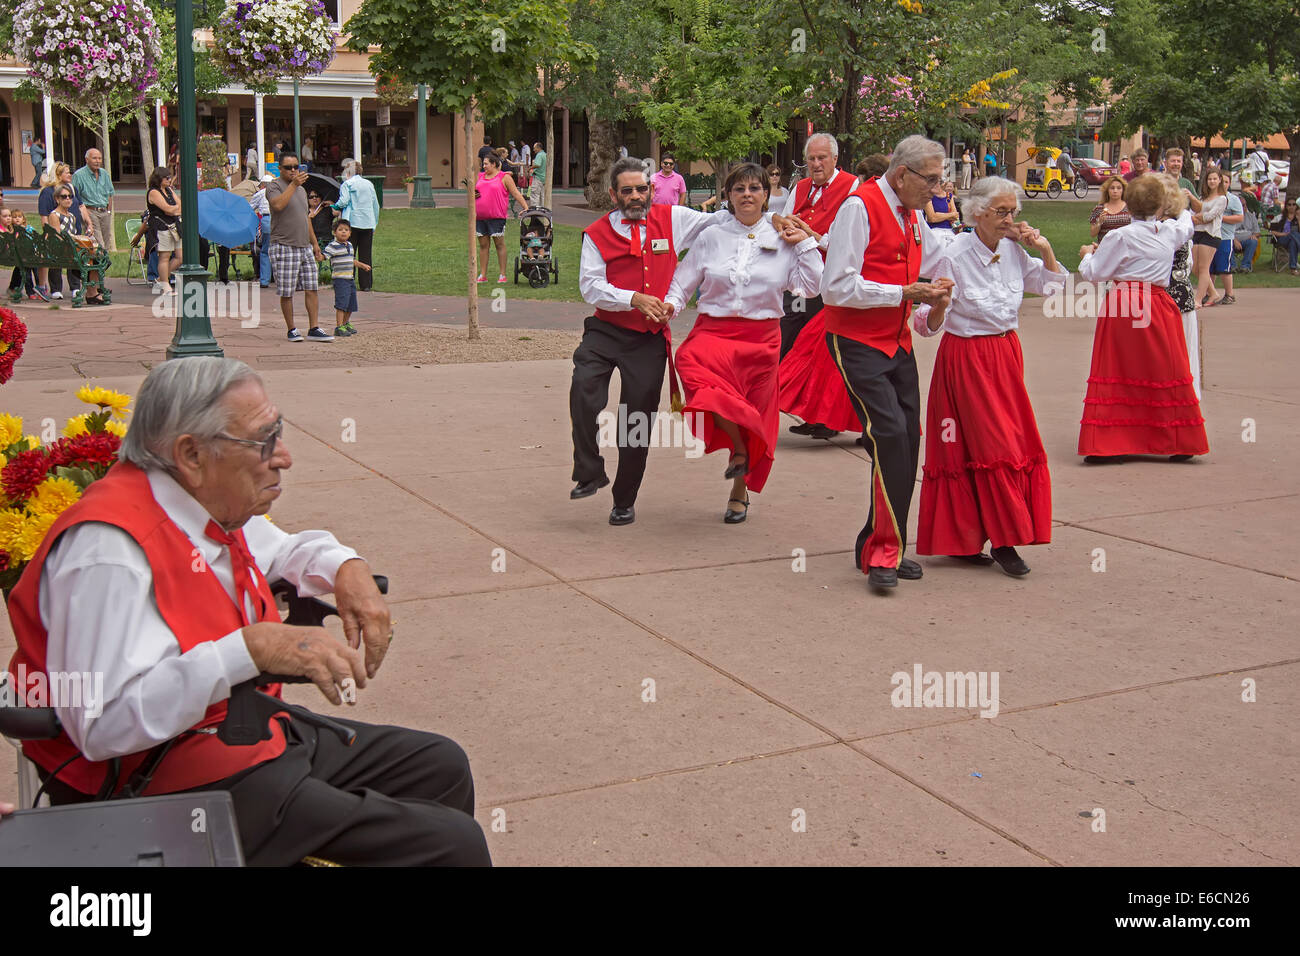 Societa Colonial Espanola, a New Mexican folkloric group, performing traditional dances during Santa Fe Bandstand - Stock Image